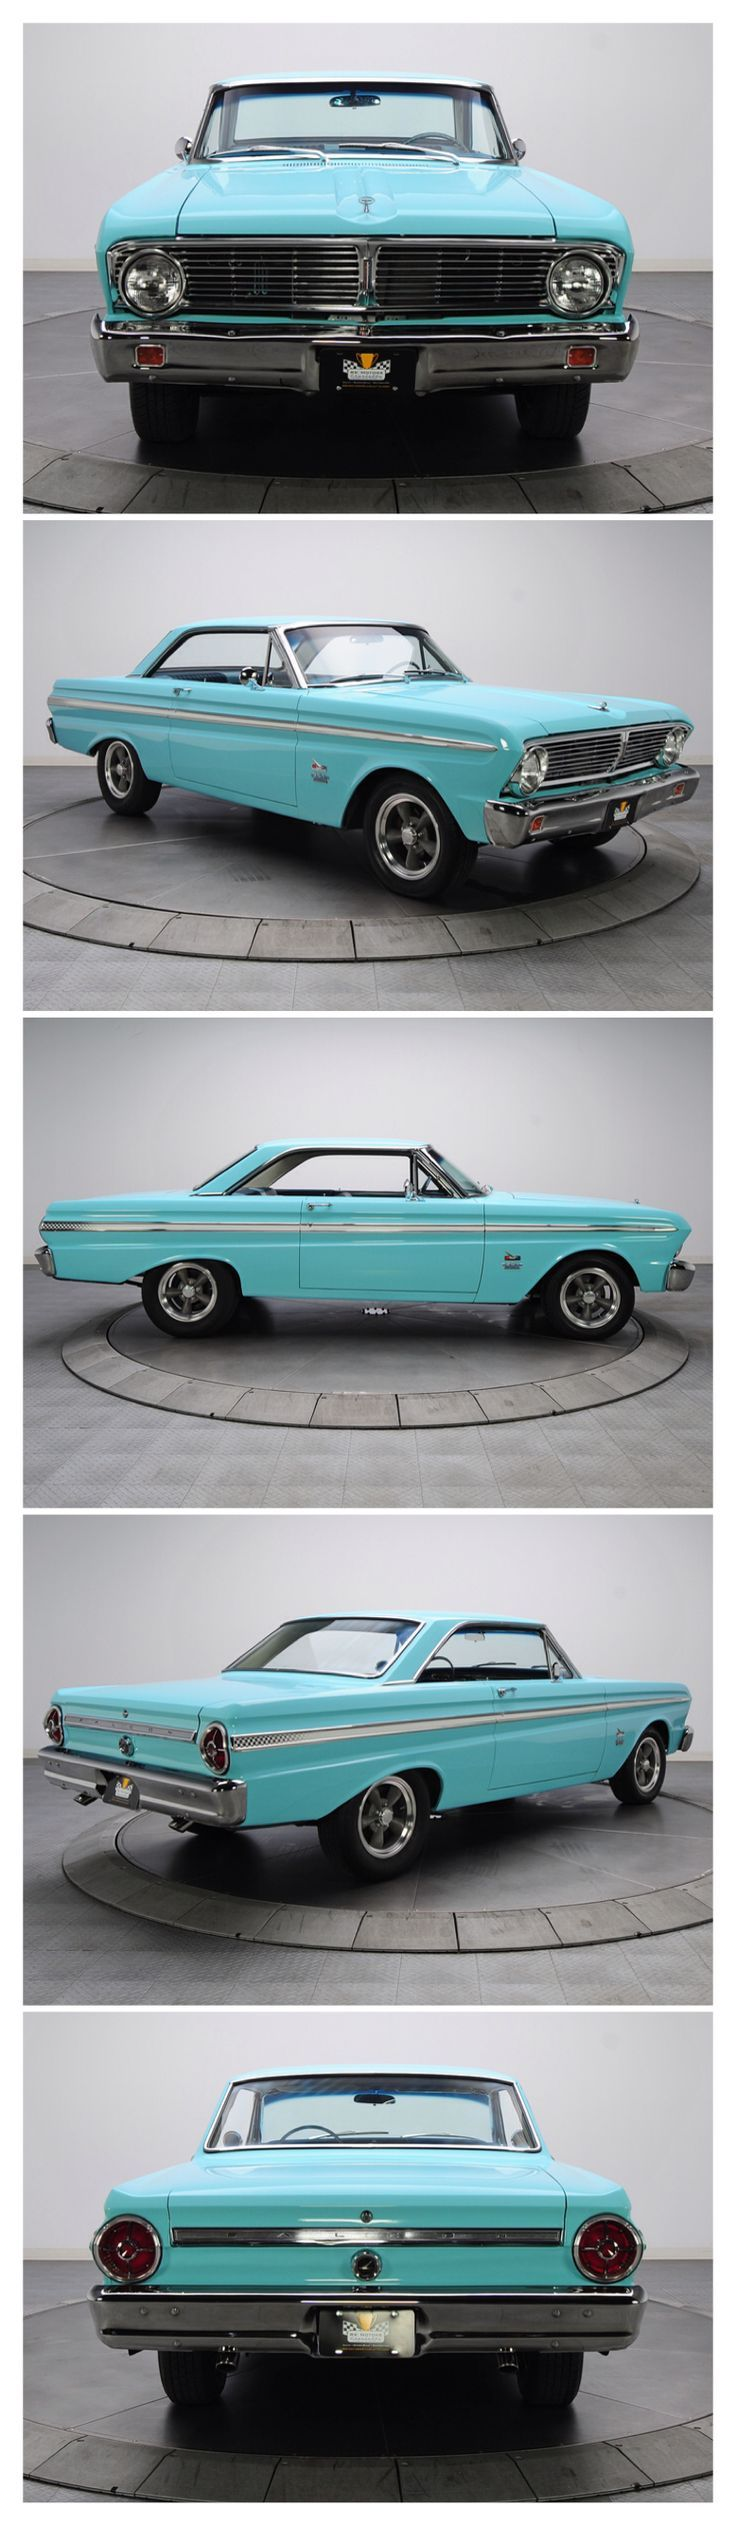 1965 Ford Blue Falcon Futura 2Dr. H.T. Maintenance of old vehicles: the material…